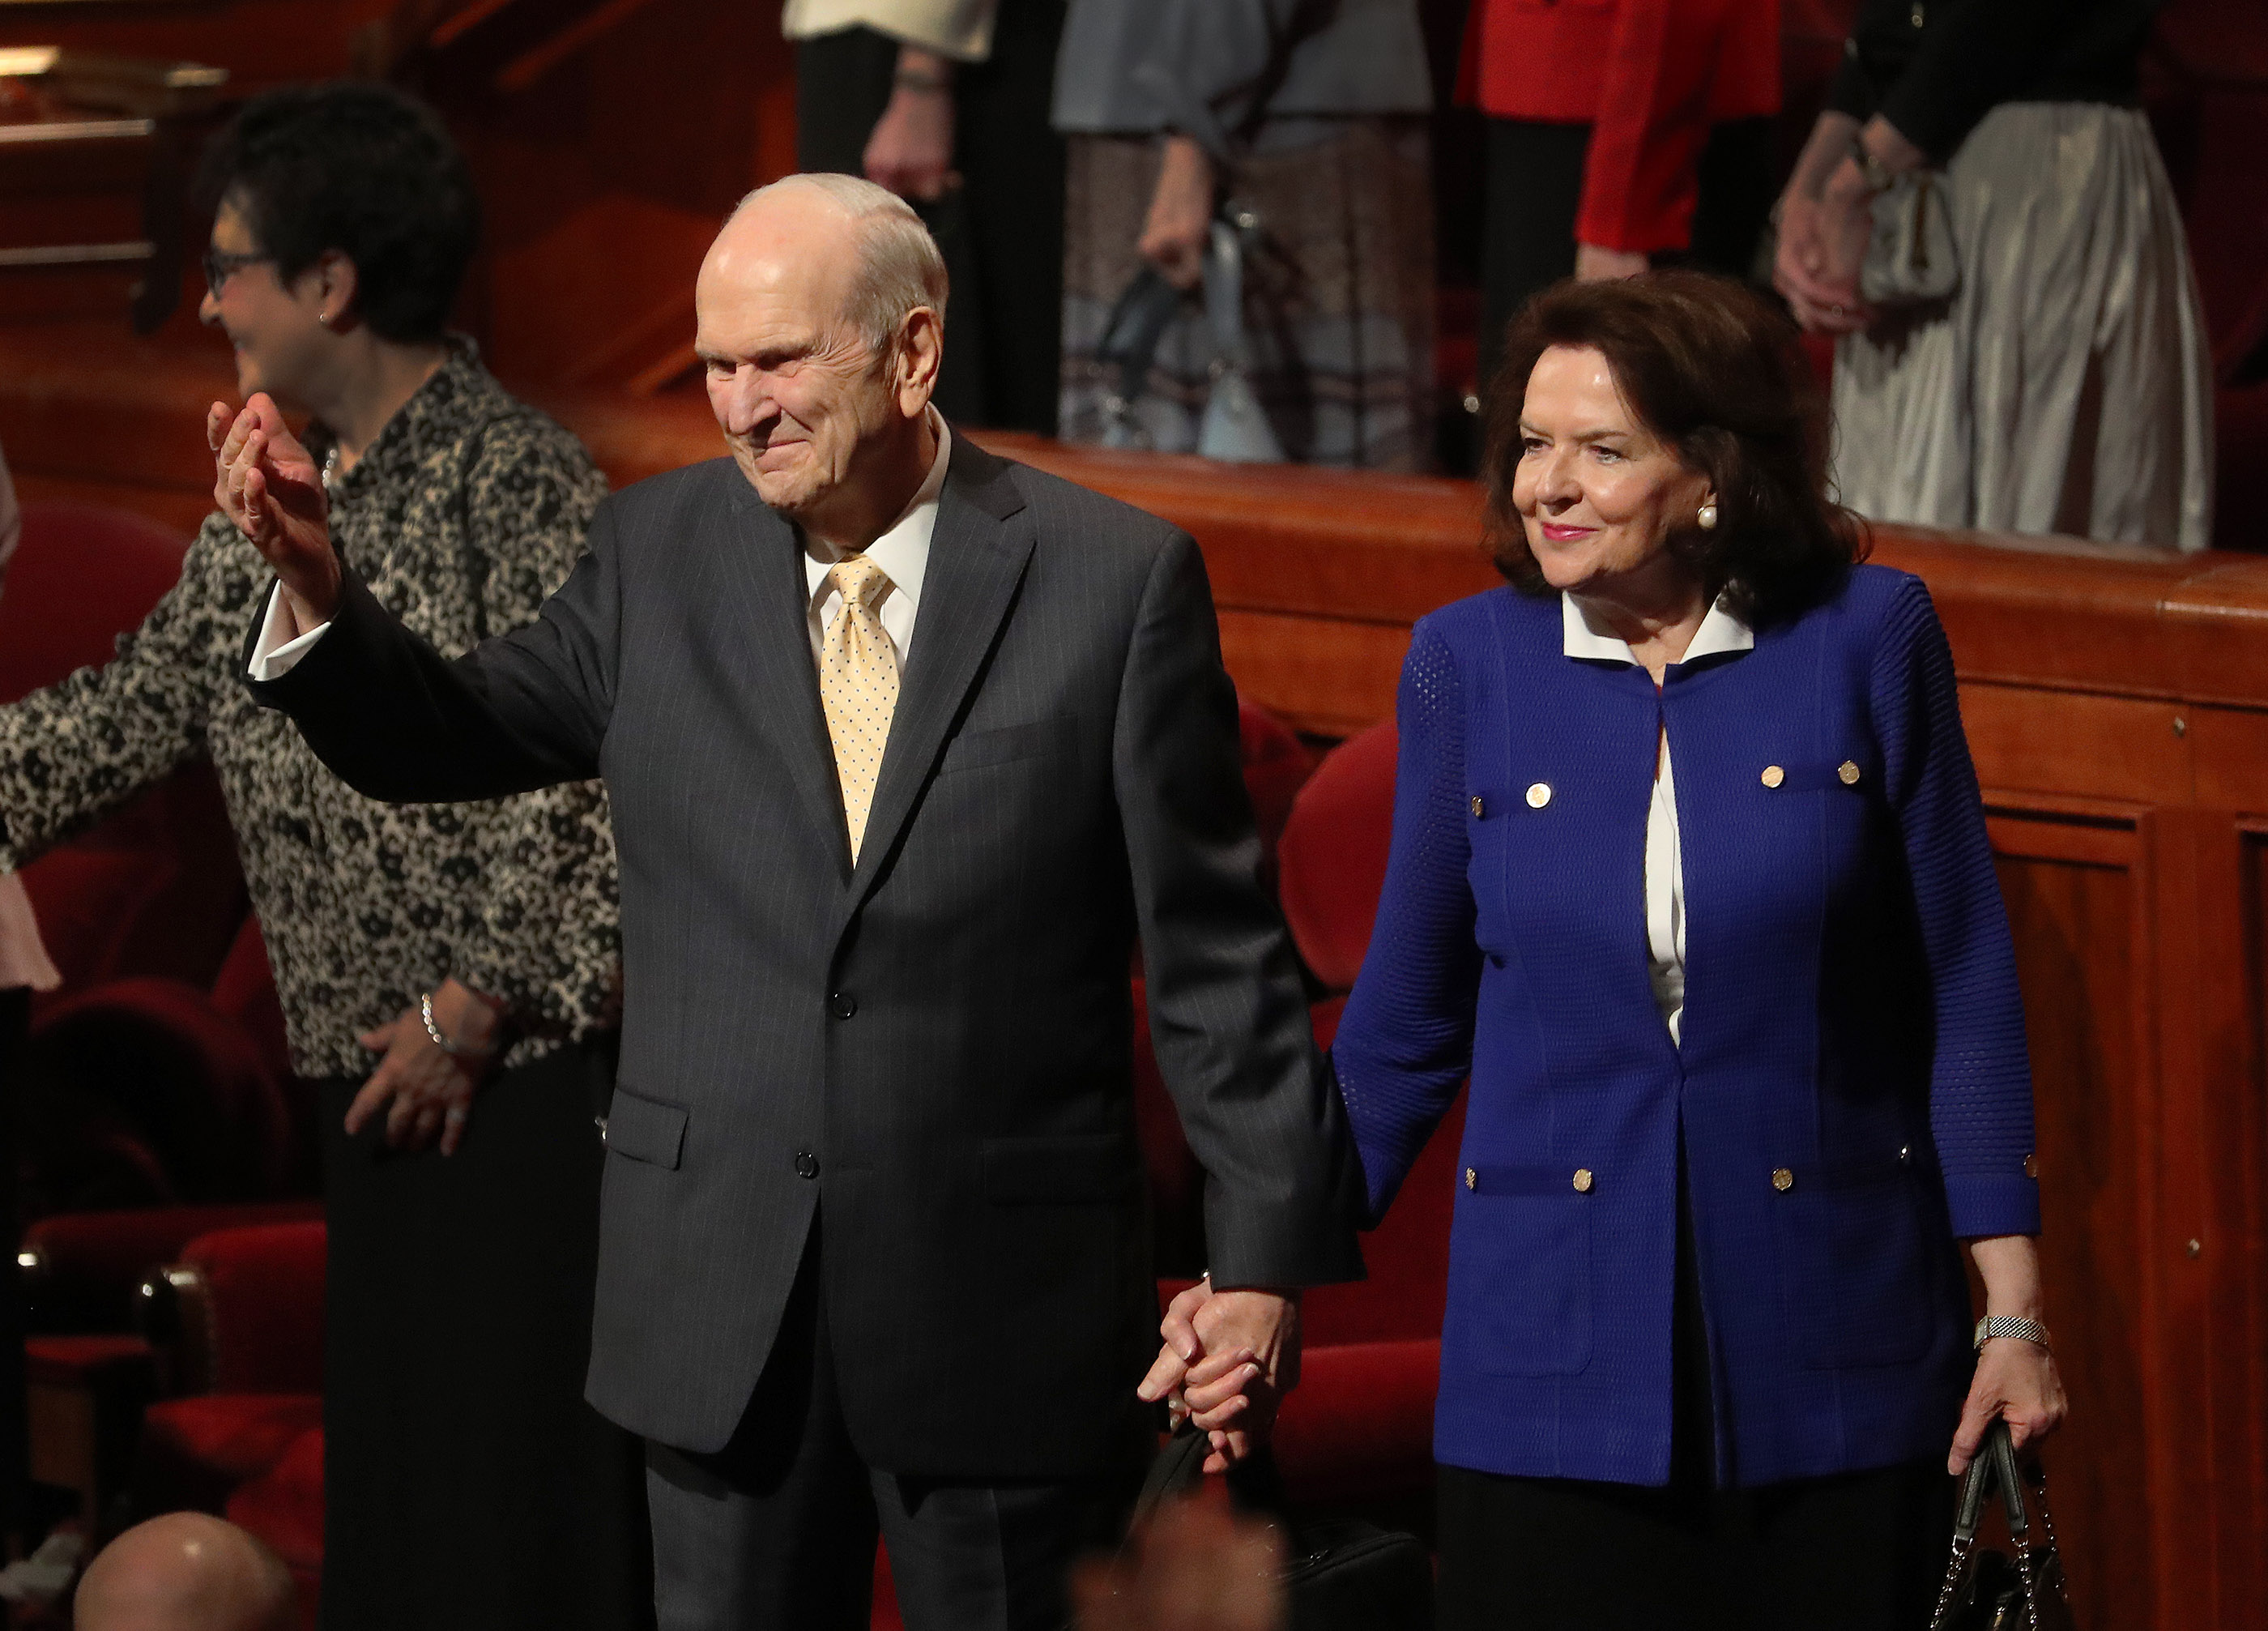 President Russell M. Nelson of The Church of Jesus Christ of Latter-day Saints, and his wife, Sister Wendy Nelson, wave to conferencegoers of the 189th Annual General Conference of The Church of Jesus Christ of Latter-day Saints in Salt Lake City on Saturday, April 6, 2019.